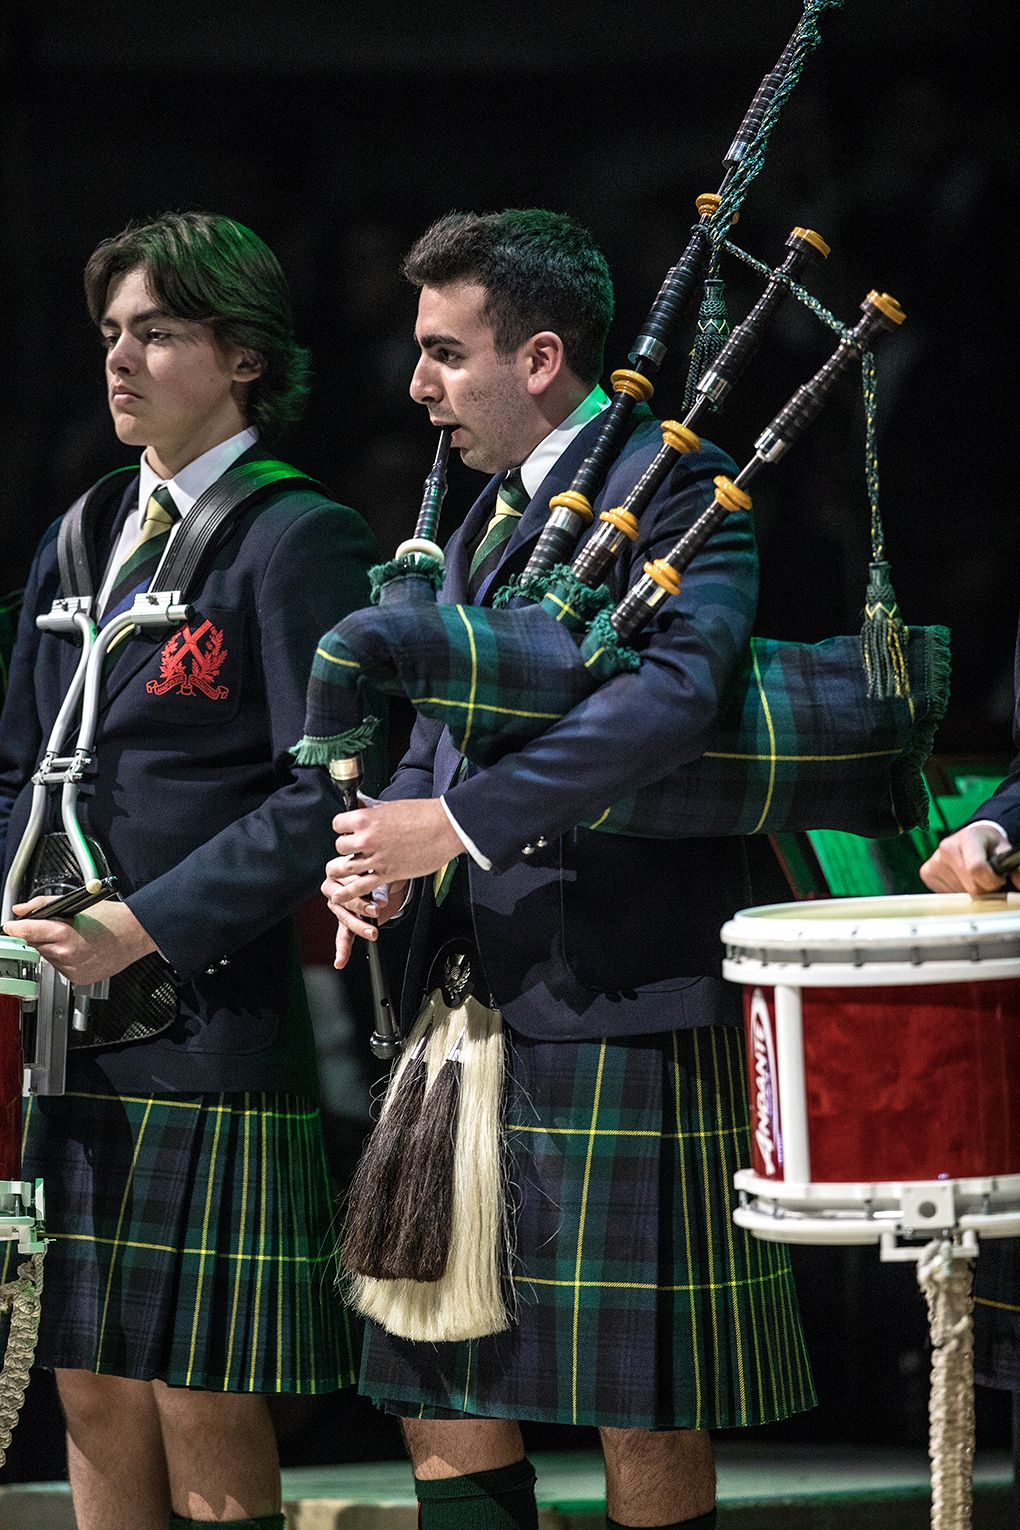 Drummer Ewan Fox and Piper Saajan Sethi